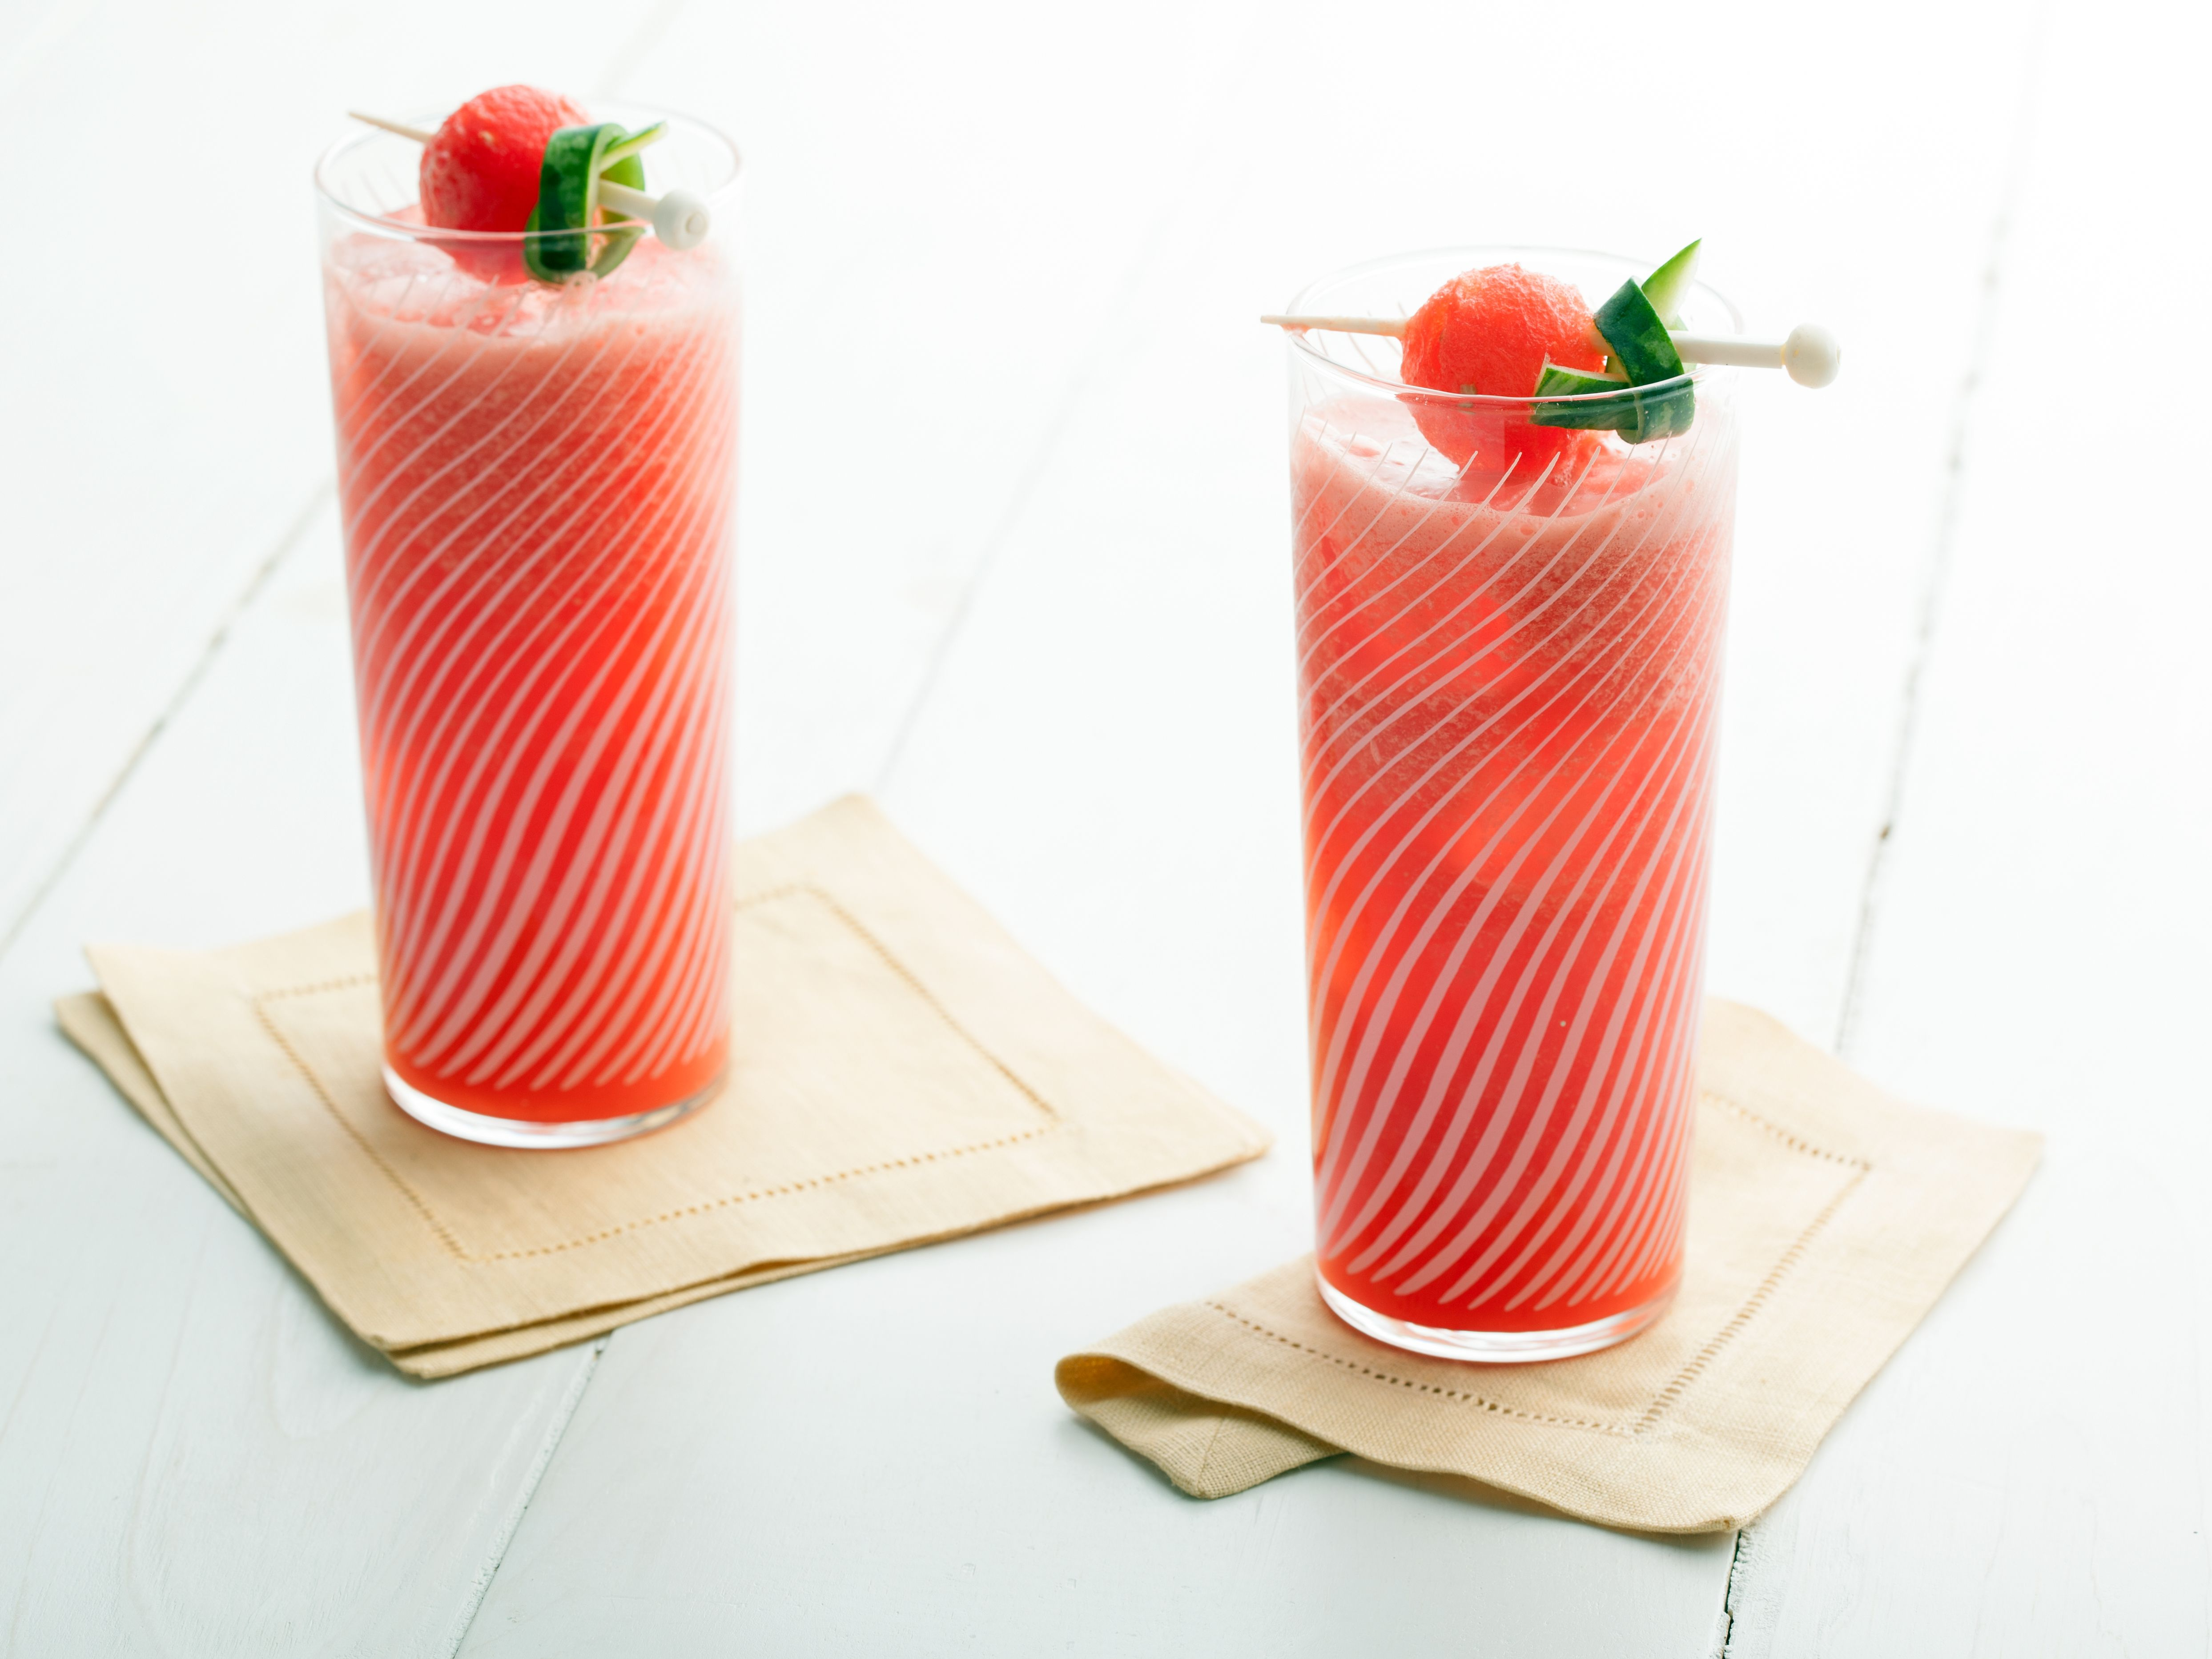 Watermelon mai tai recipe recipes food and beverage forumfinder Image collections